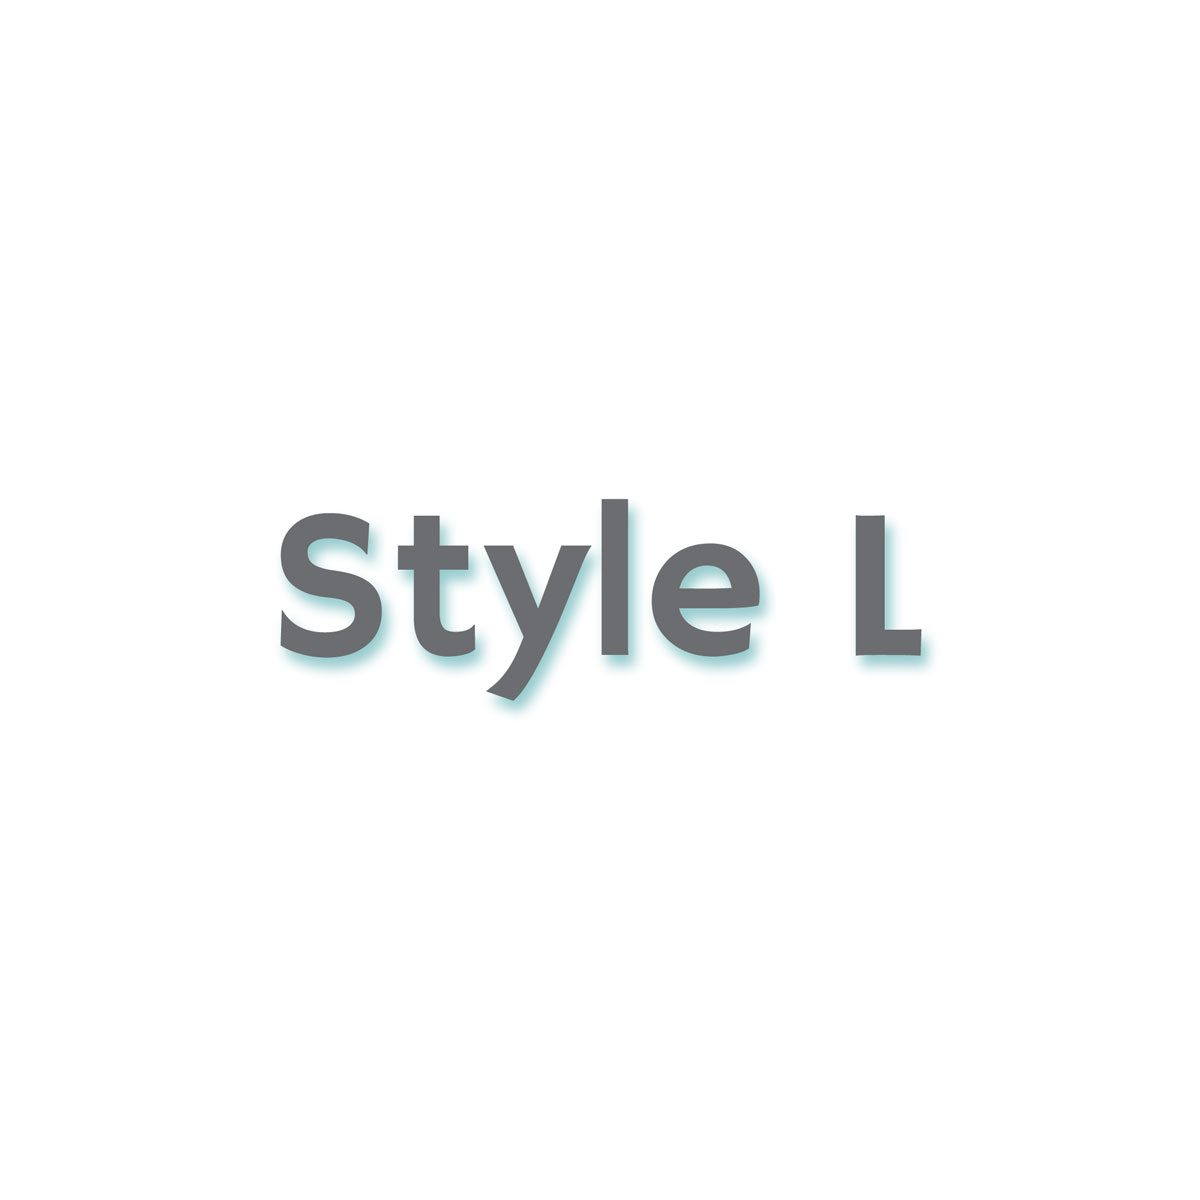 Style L (commercial machines)